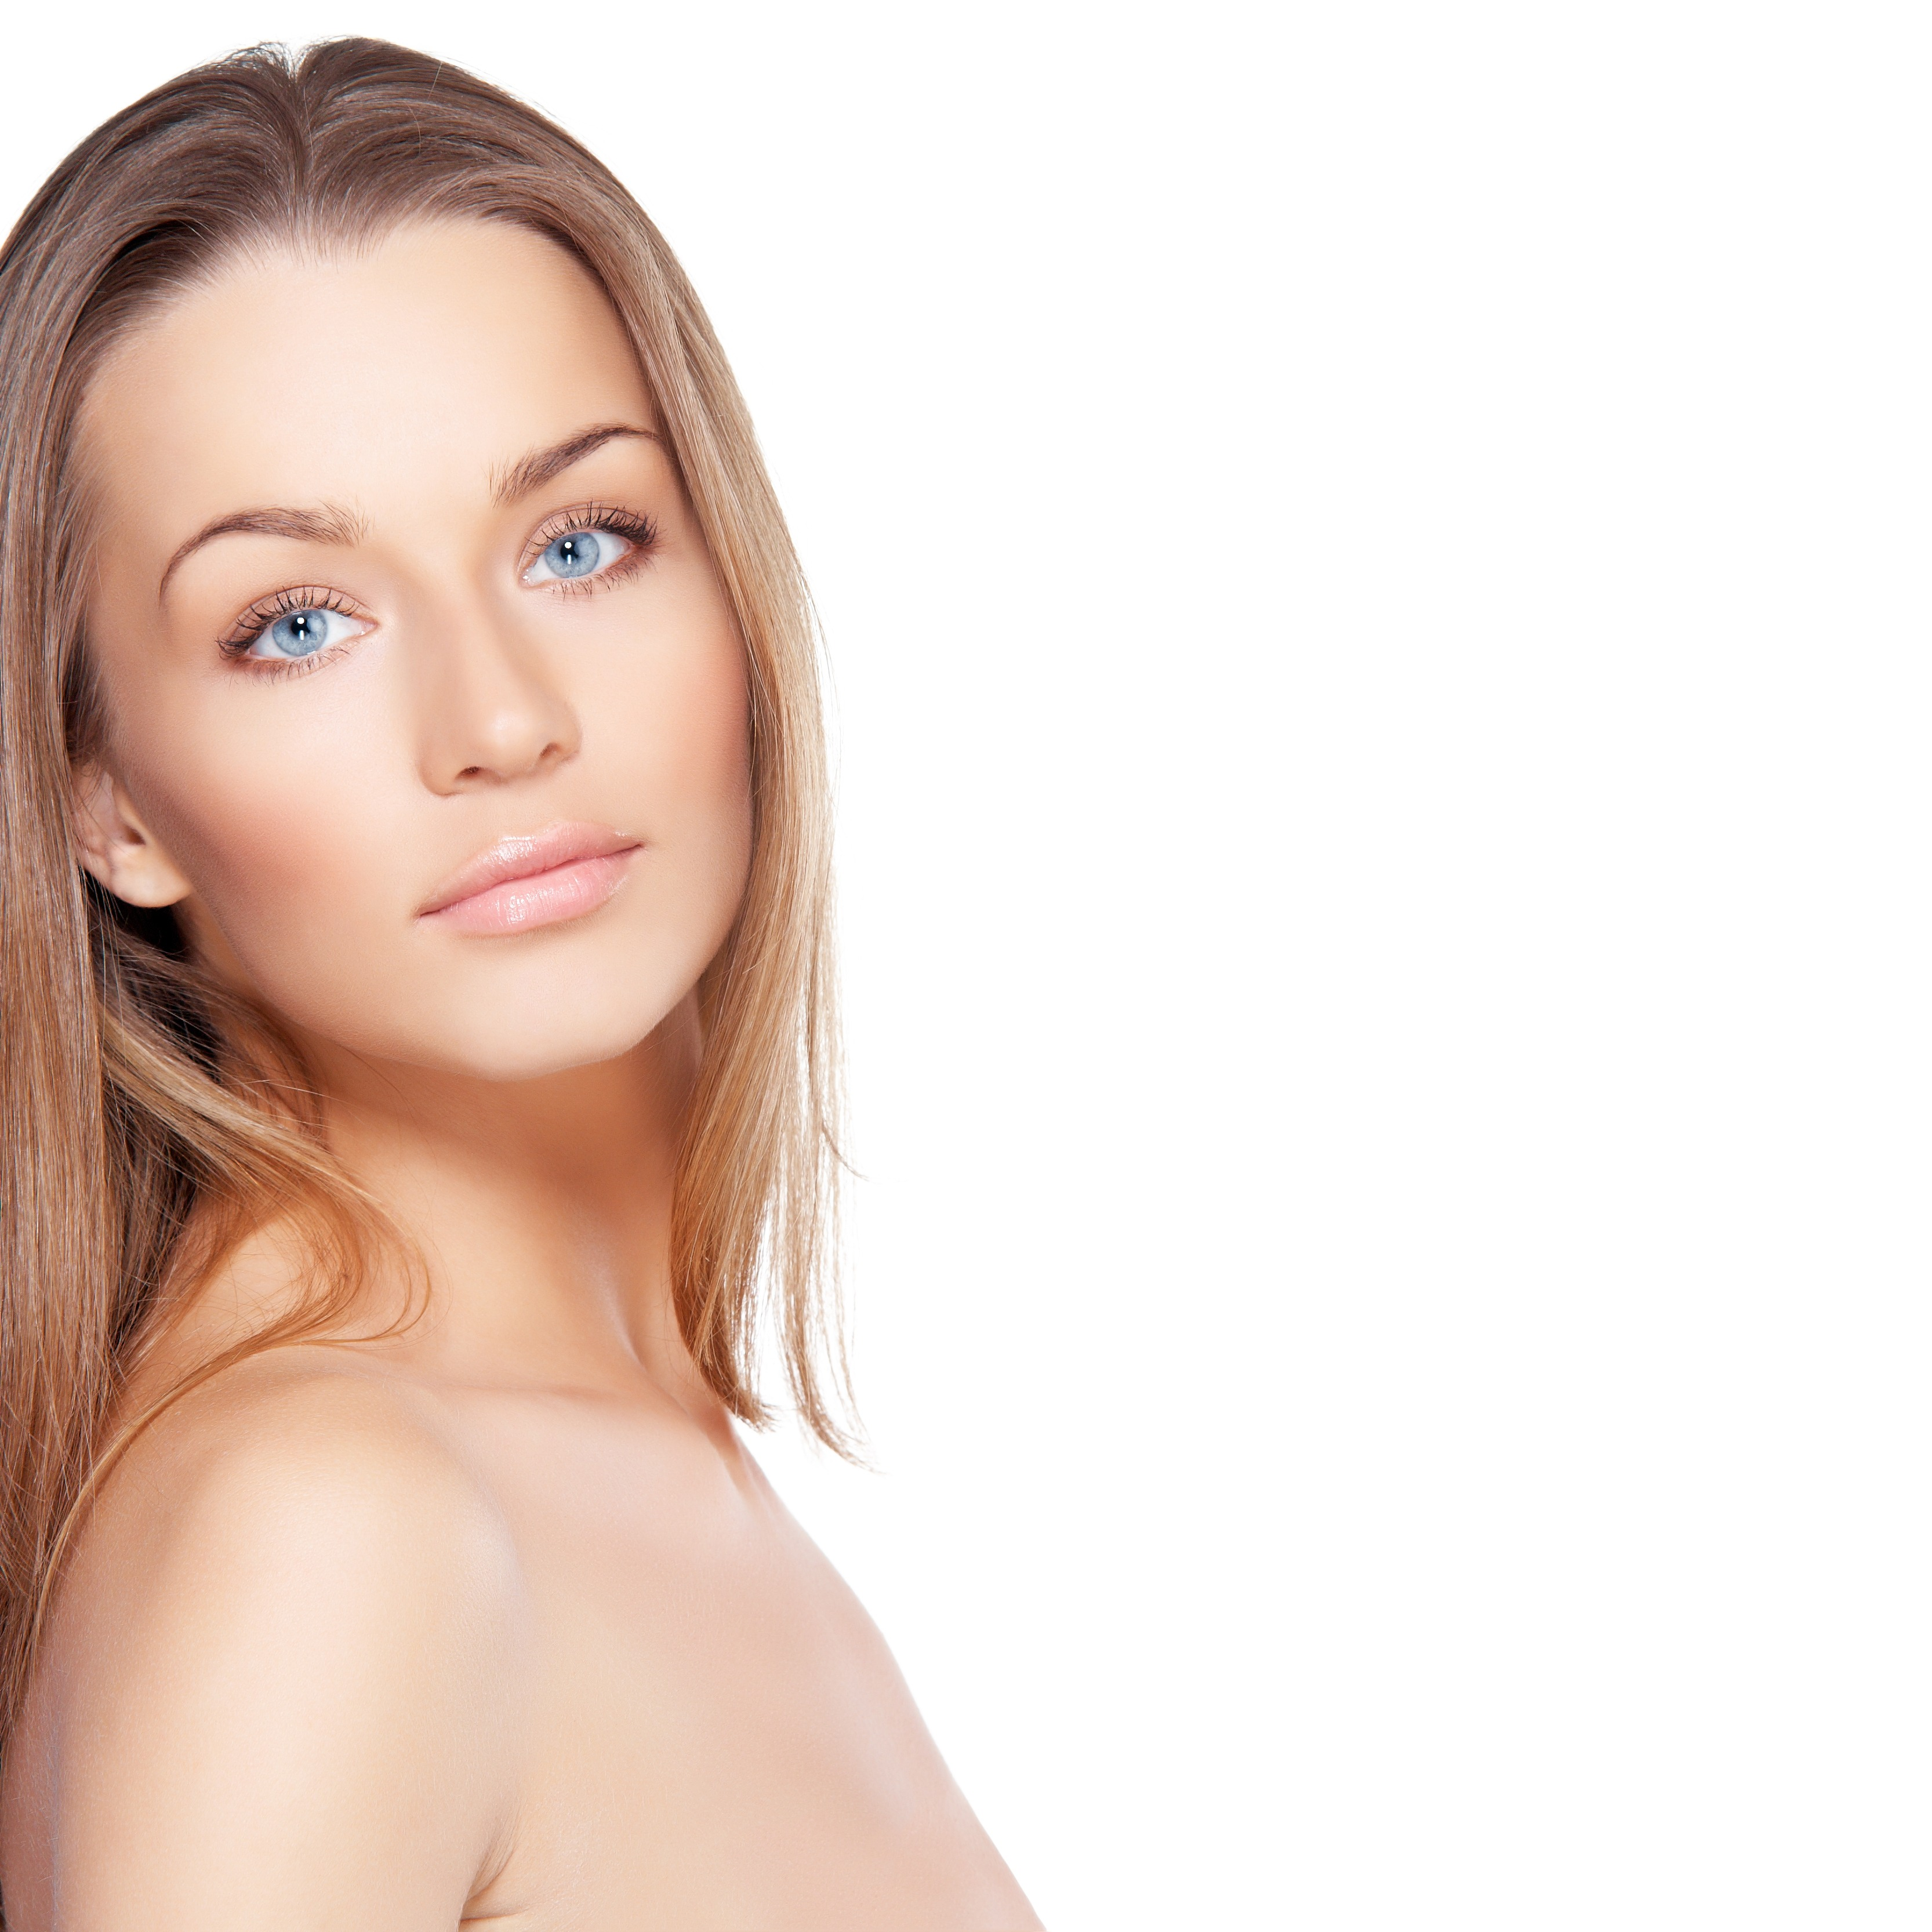 derma women Derma's best 100% free online dating site meet loads of available single women in derma with mingle2's derma dating services find a girlfriend or lover in derma, or just have fun flirting online with derma single girls.